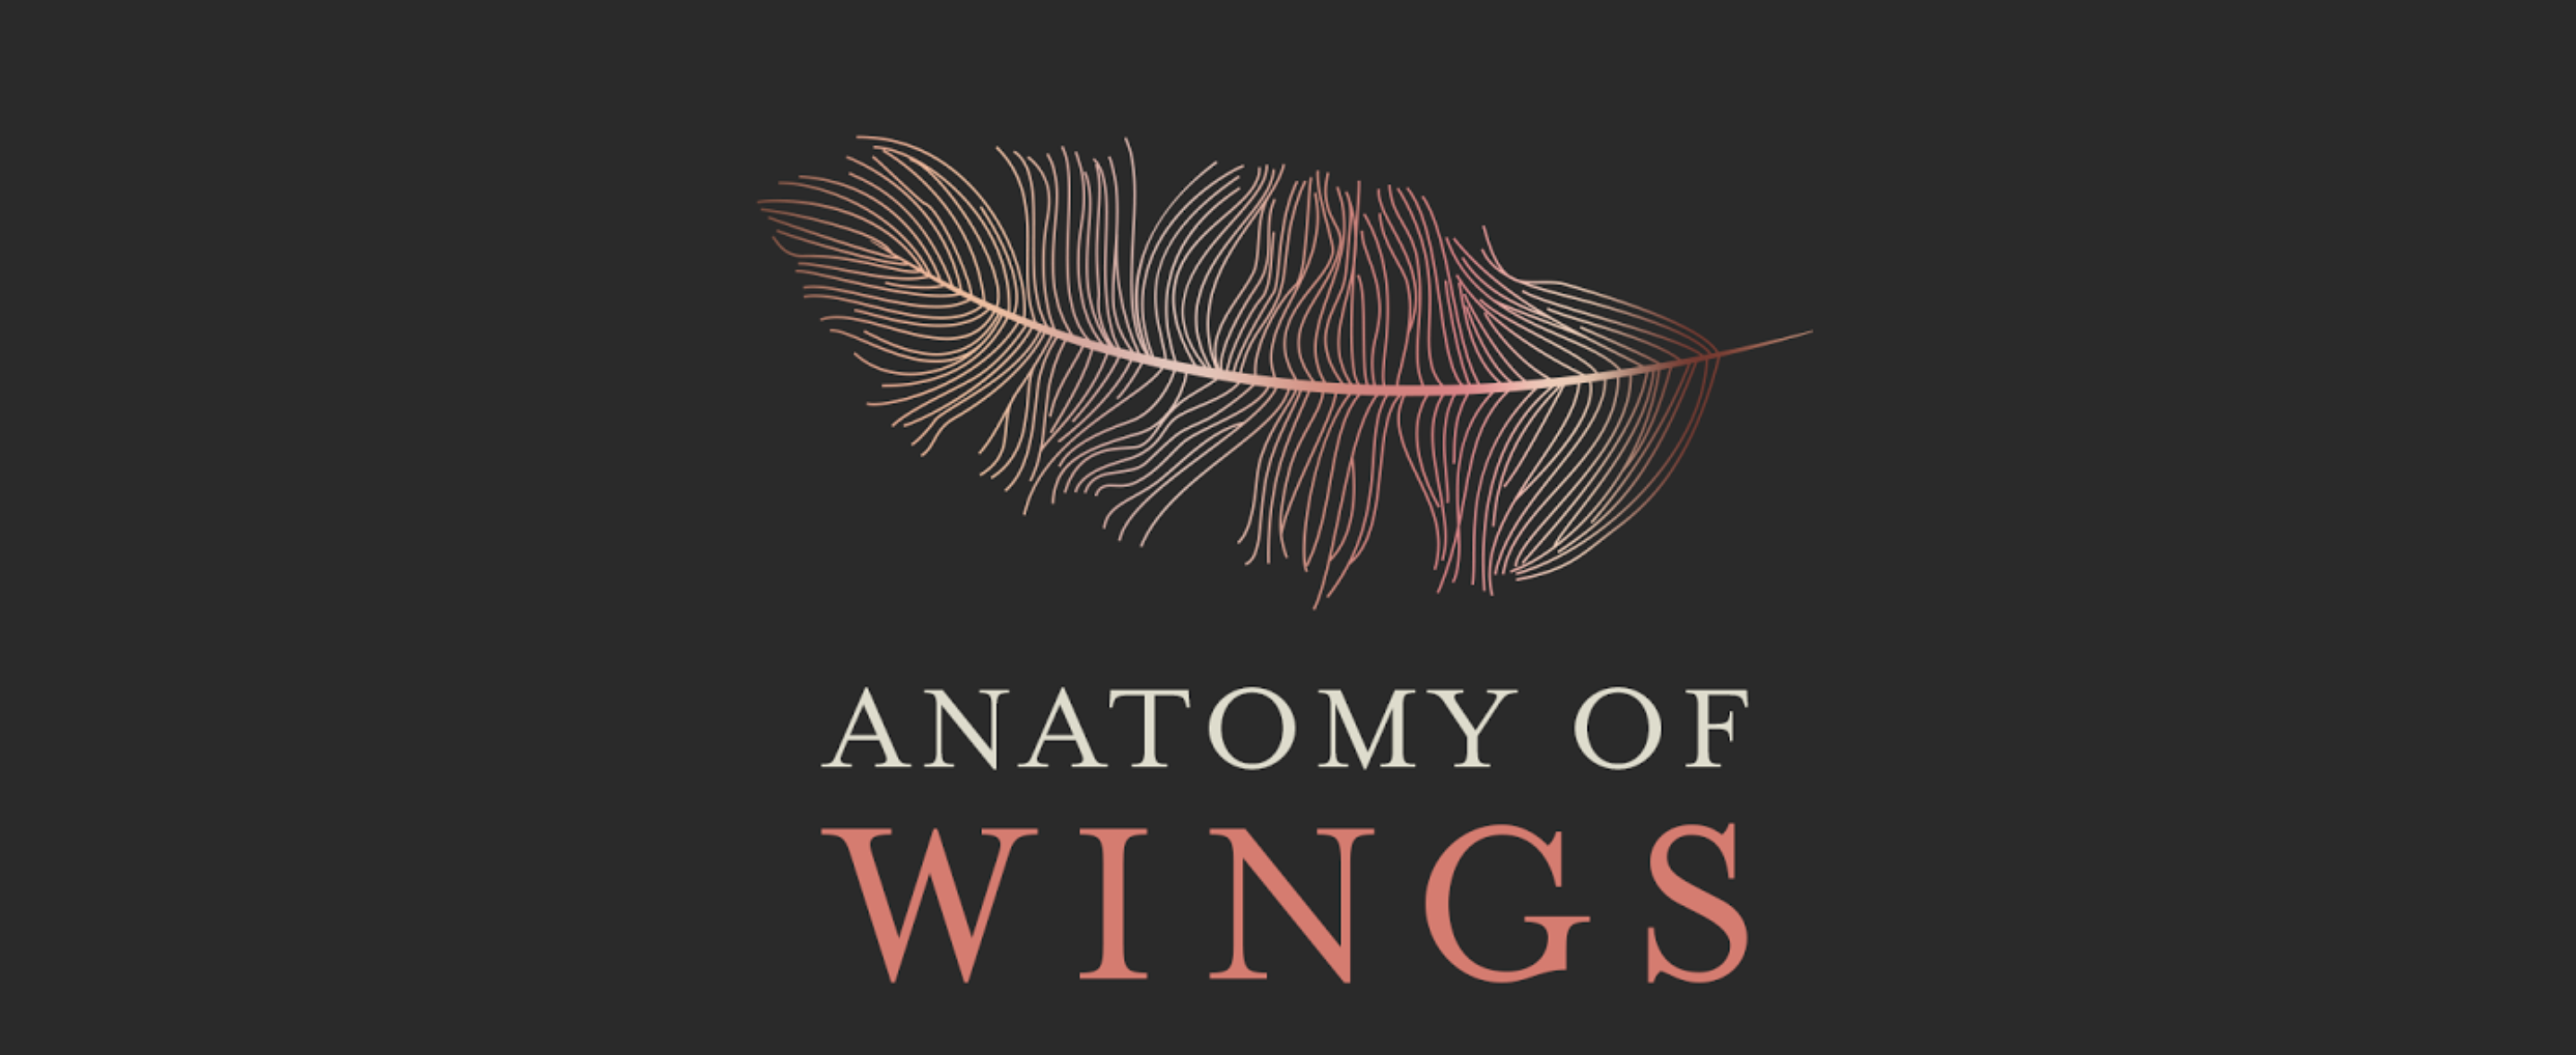 Anatomy of Wings - Motor House Baltimore